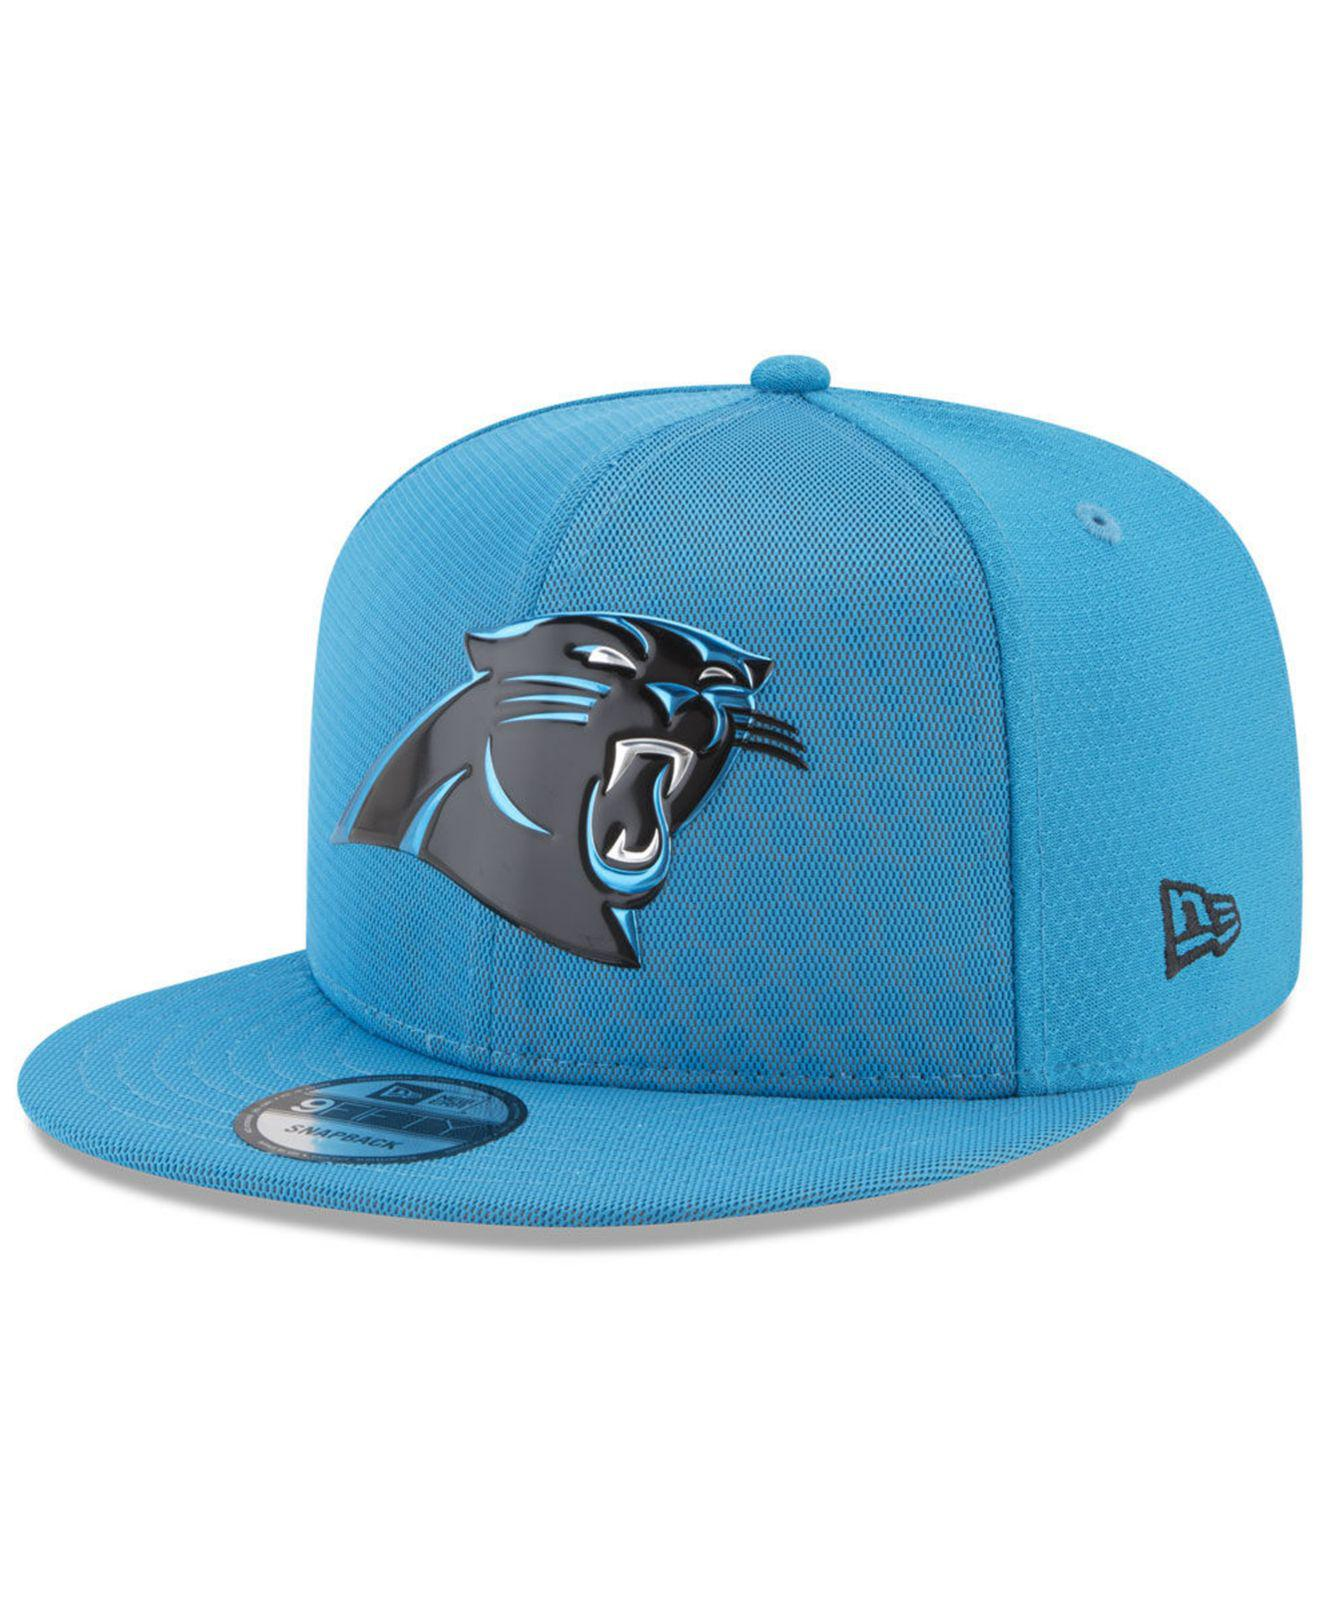 78f4252b2 Lyst - Ktz On Field Color Rush 9fifty Snapback Cap in Blue for Men ...